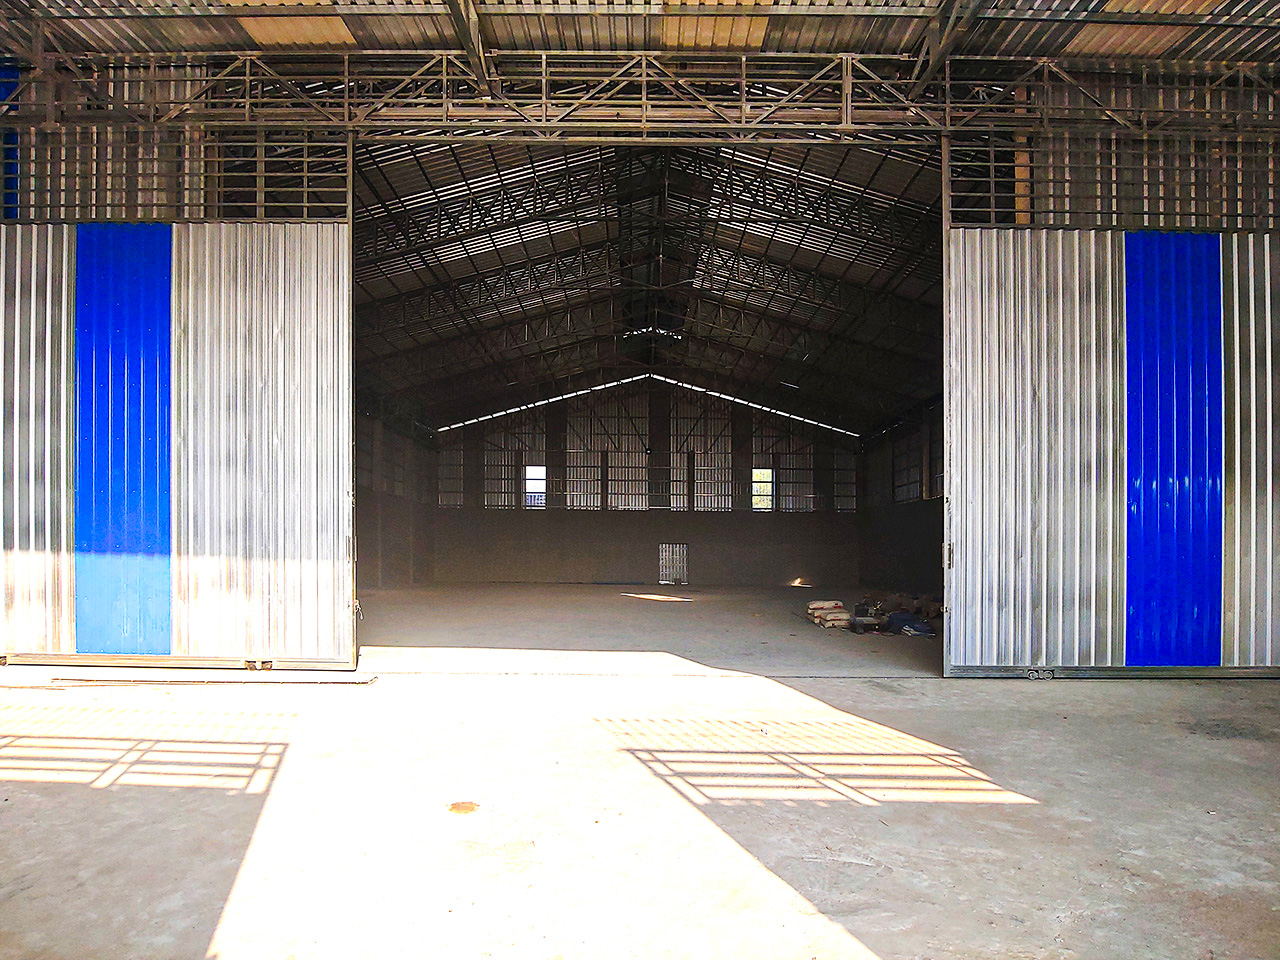 1300 Sq.m warehouse for rent in Phnom Penh Thmei area